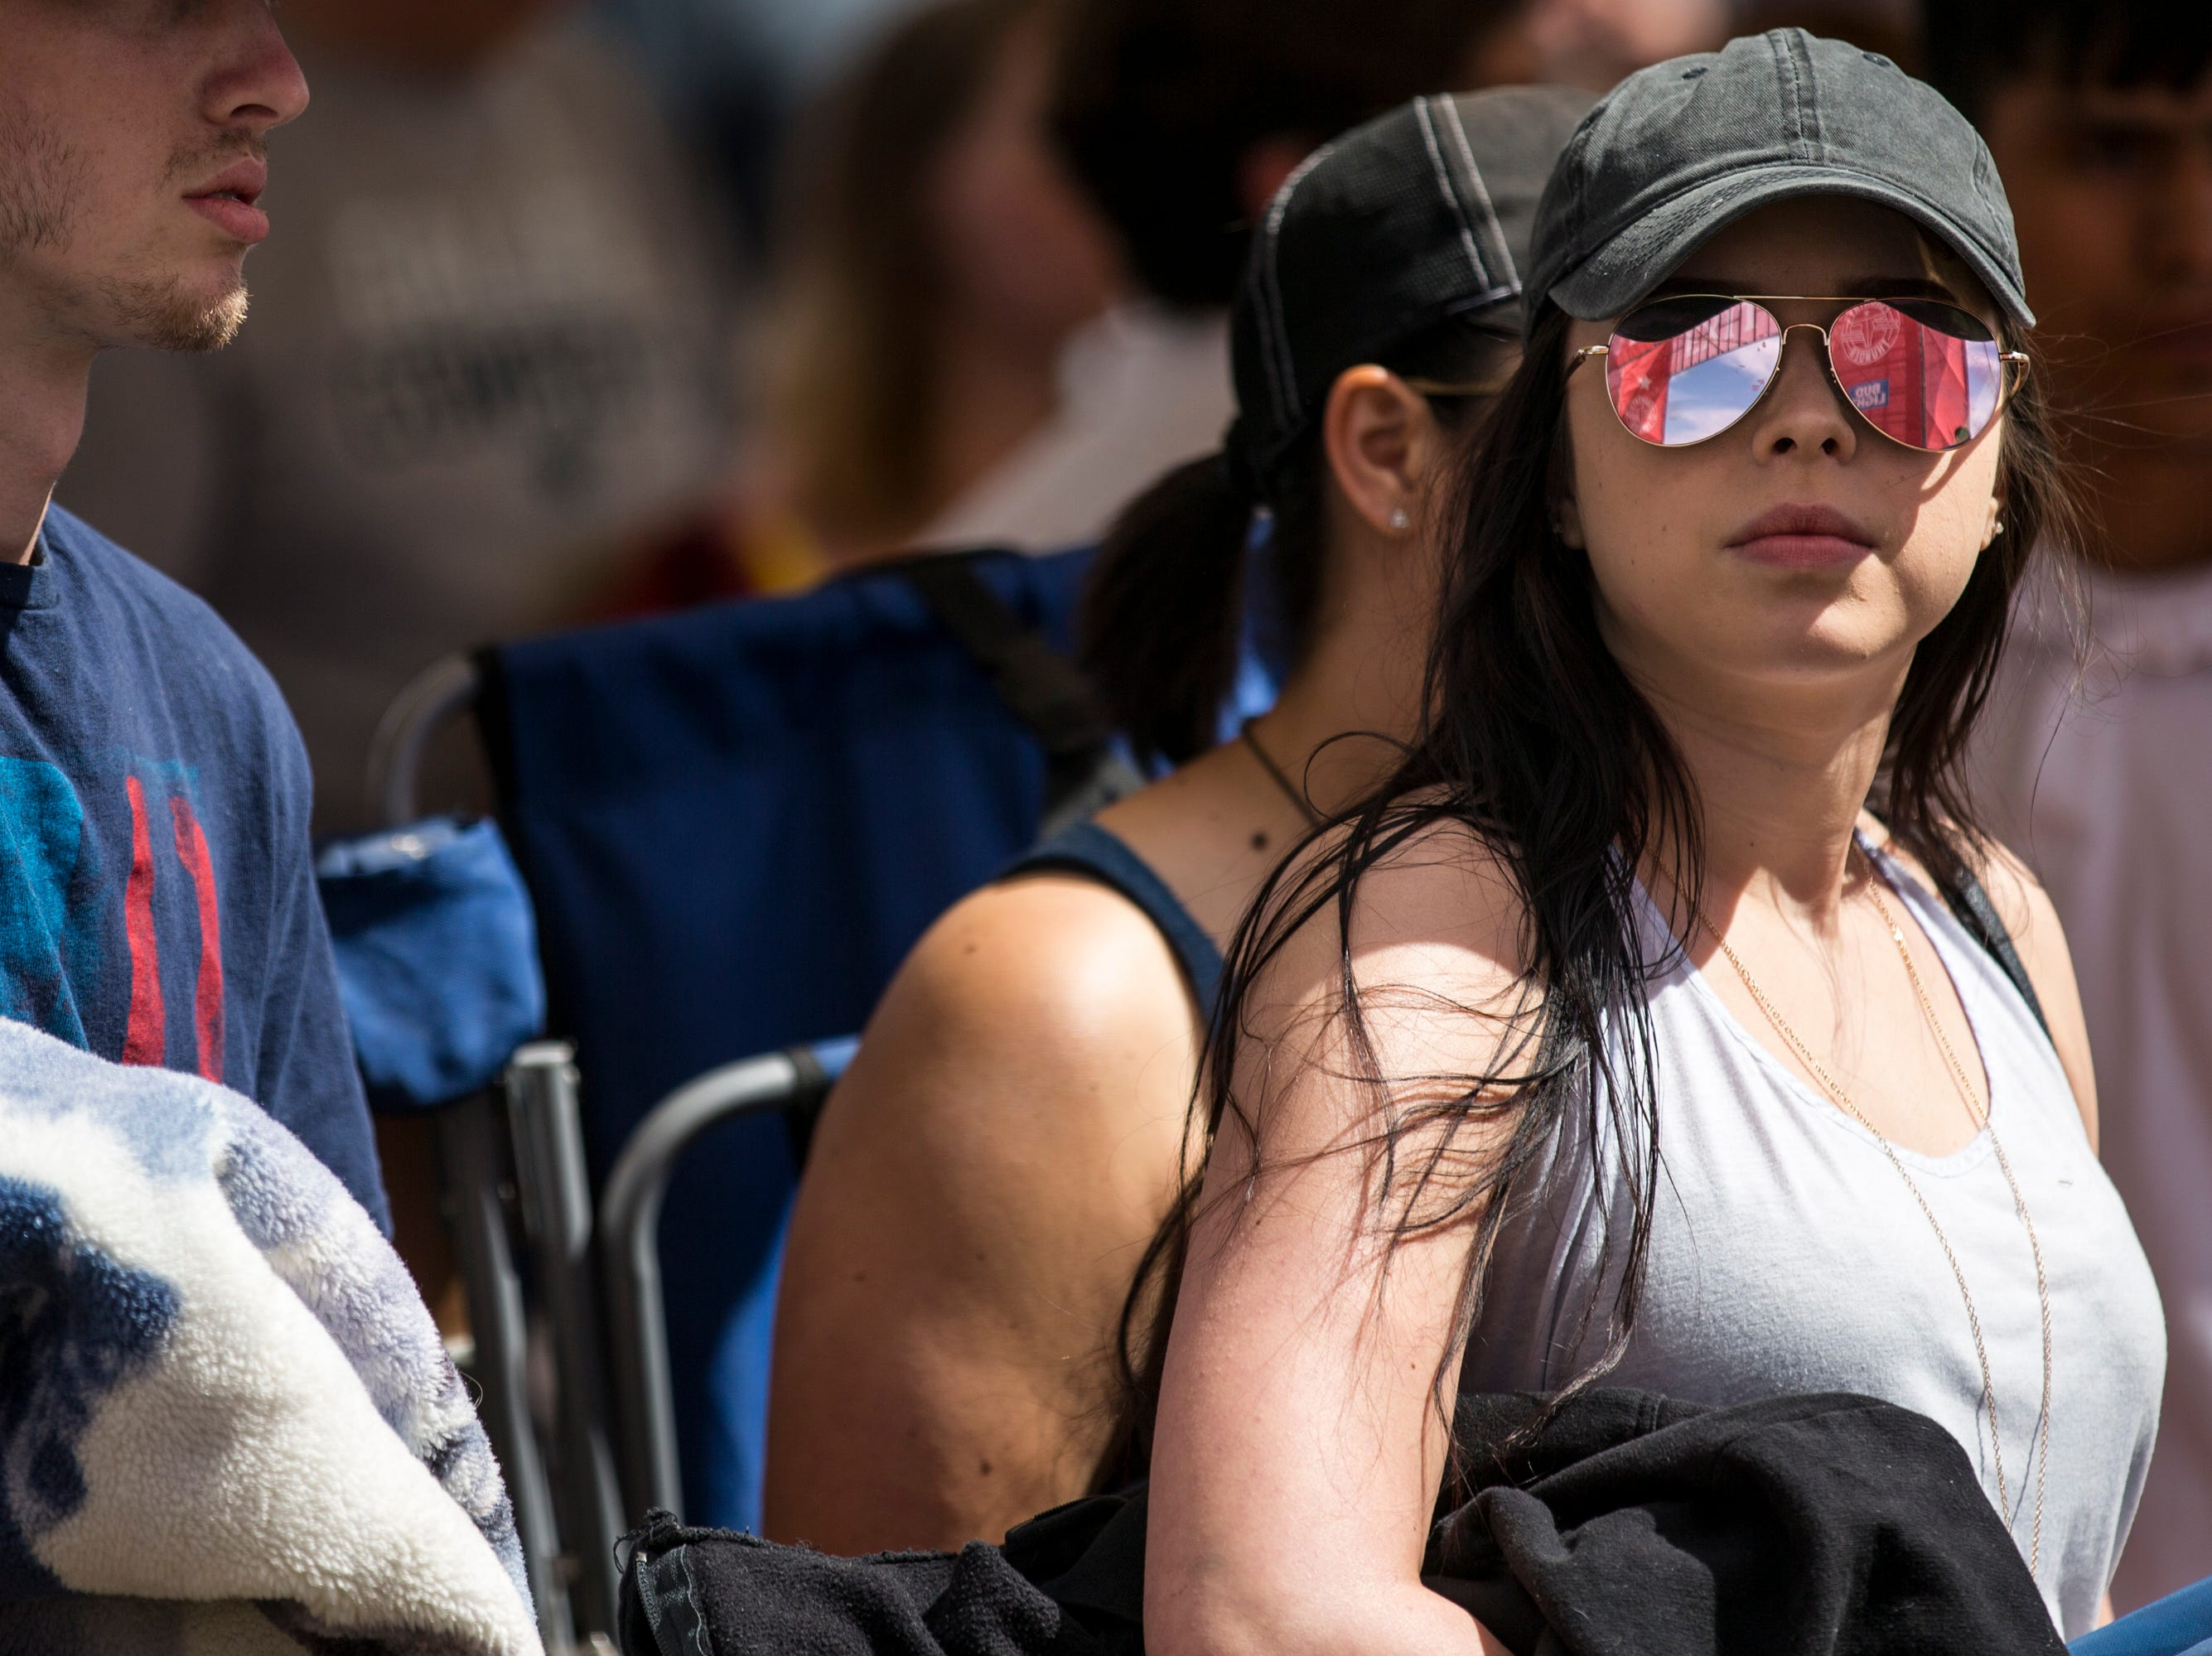 Antonette Faulks waits in line at the entrance on April 11, 2019, during Day 1 of Country Thunder Arizona in Florence.